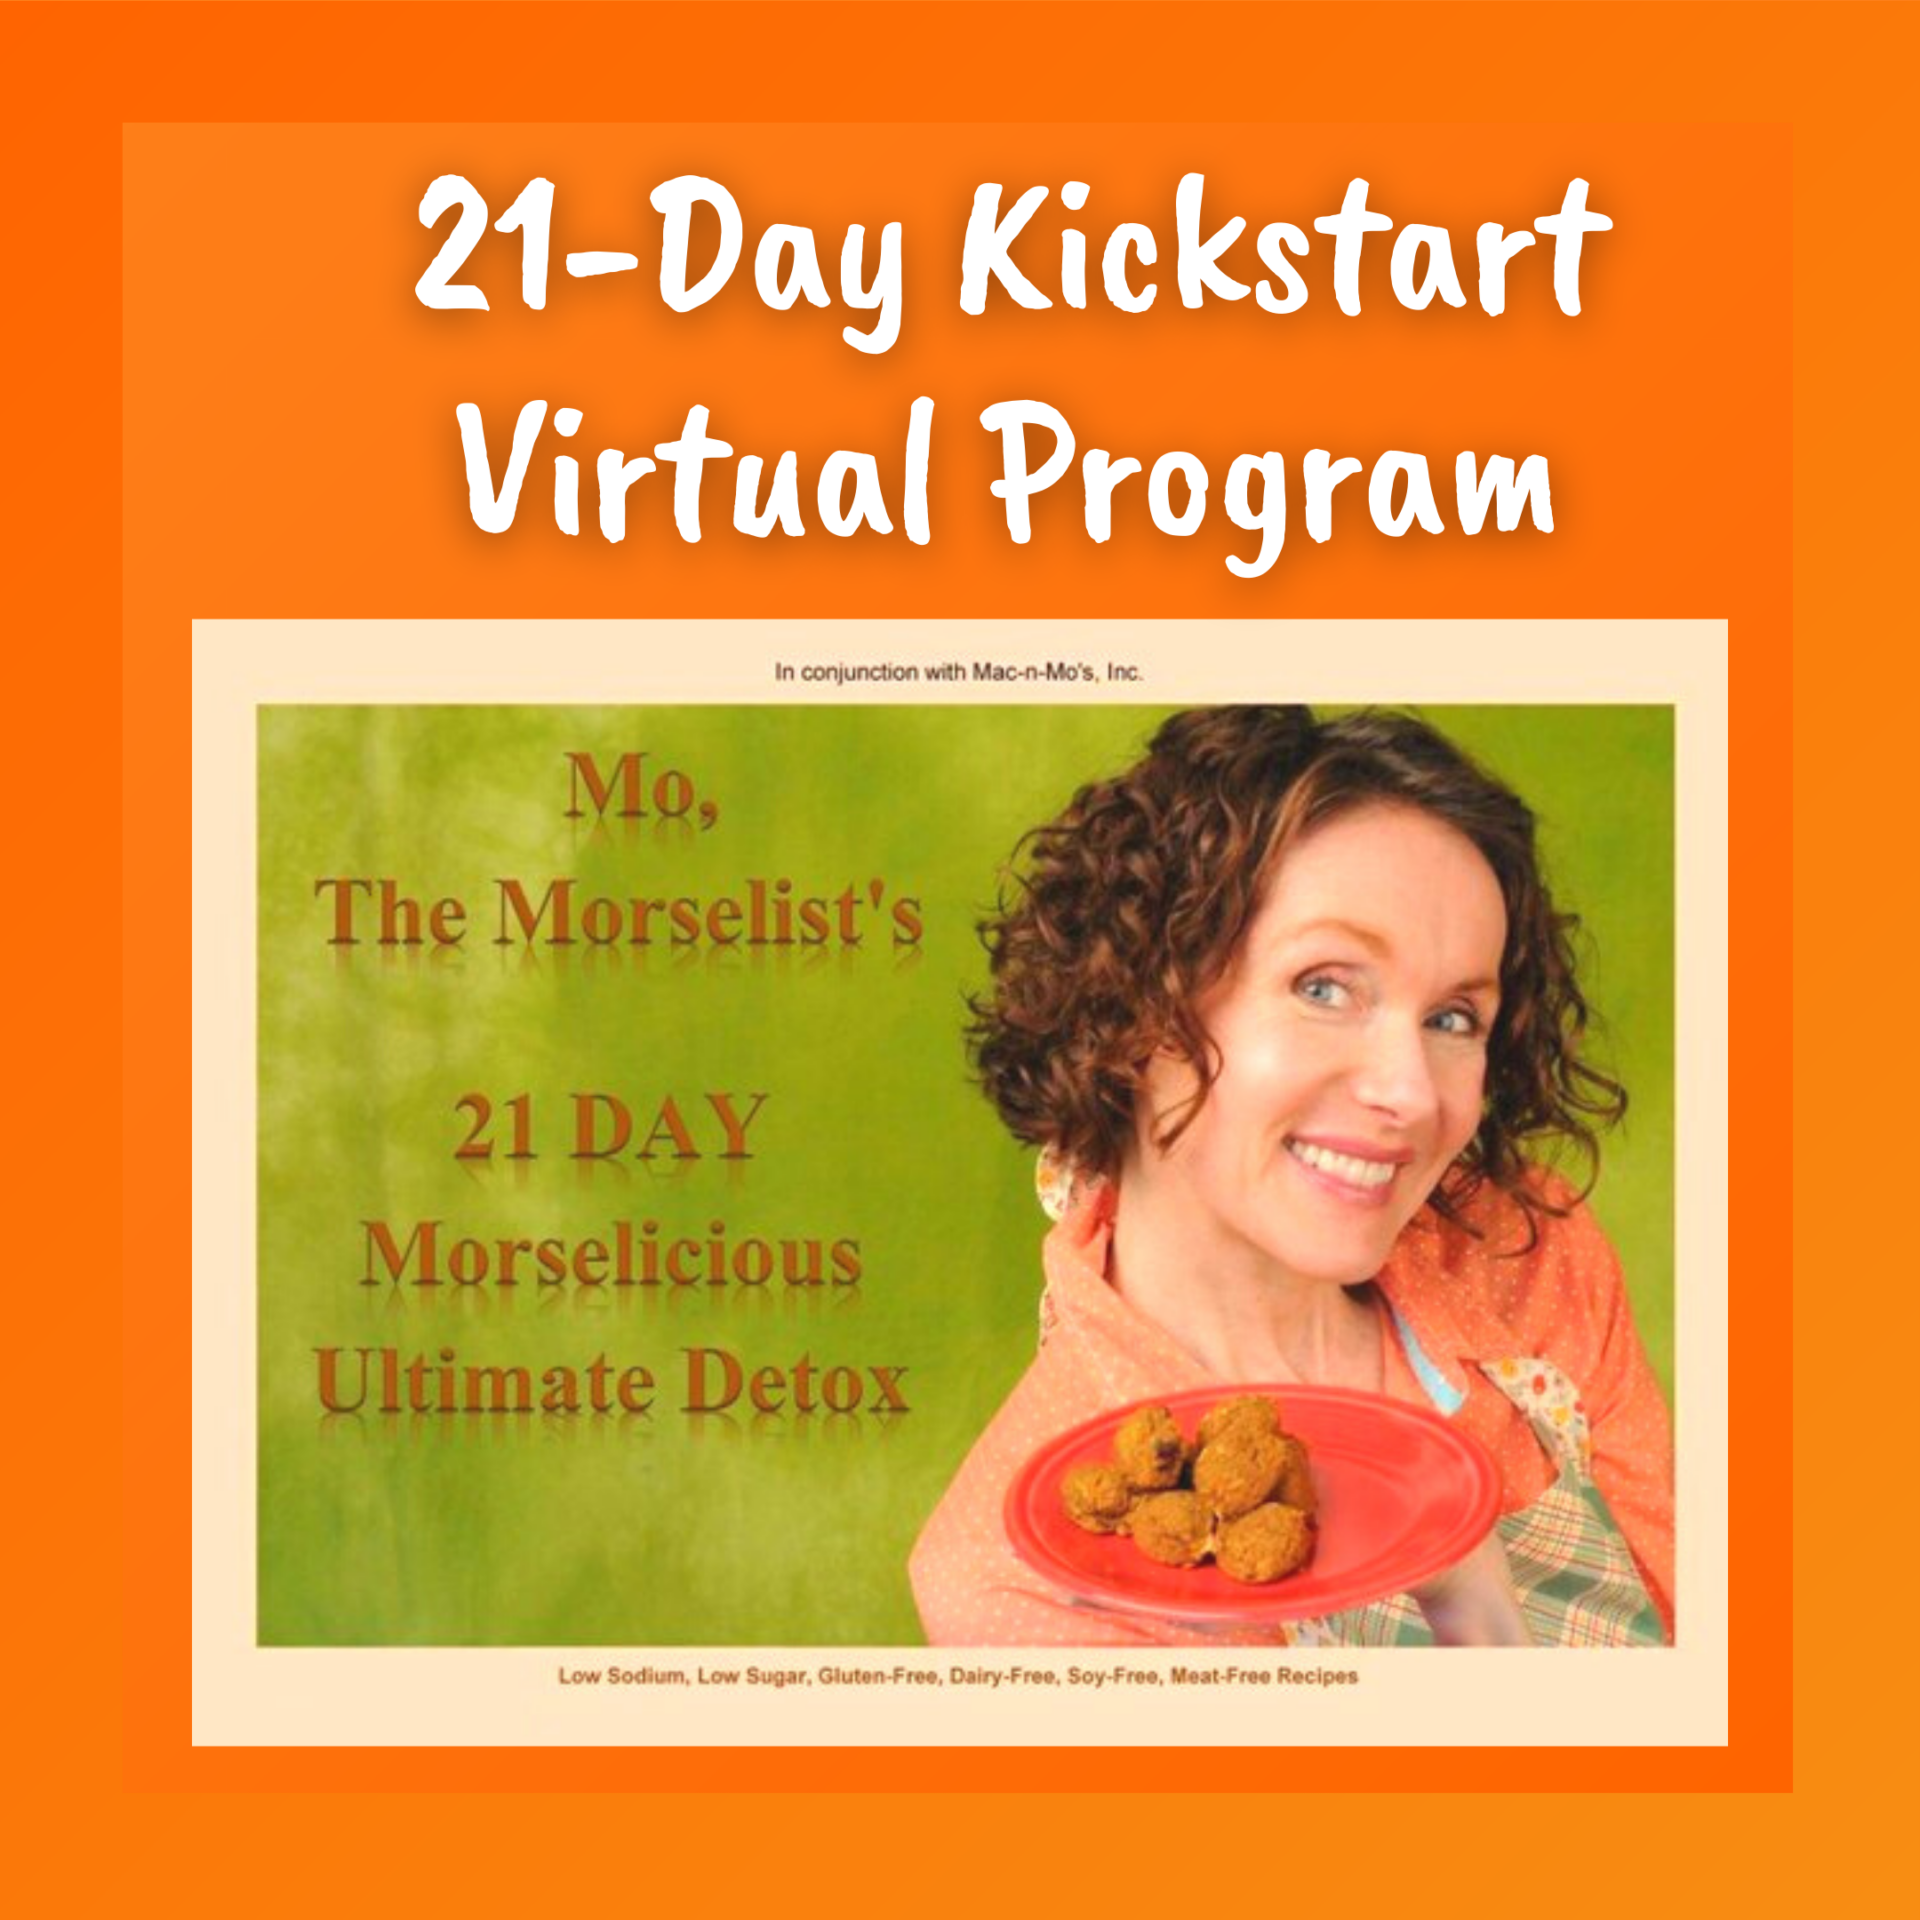 21-Day Kickstart Virtual Program. Mo holding a plate of her morsels on the cover of her 21 Day Morselicious Ultimate Detox cookbook.